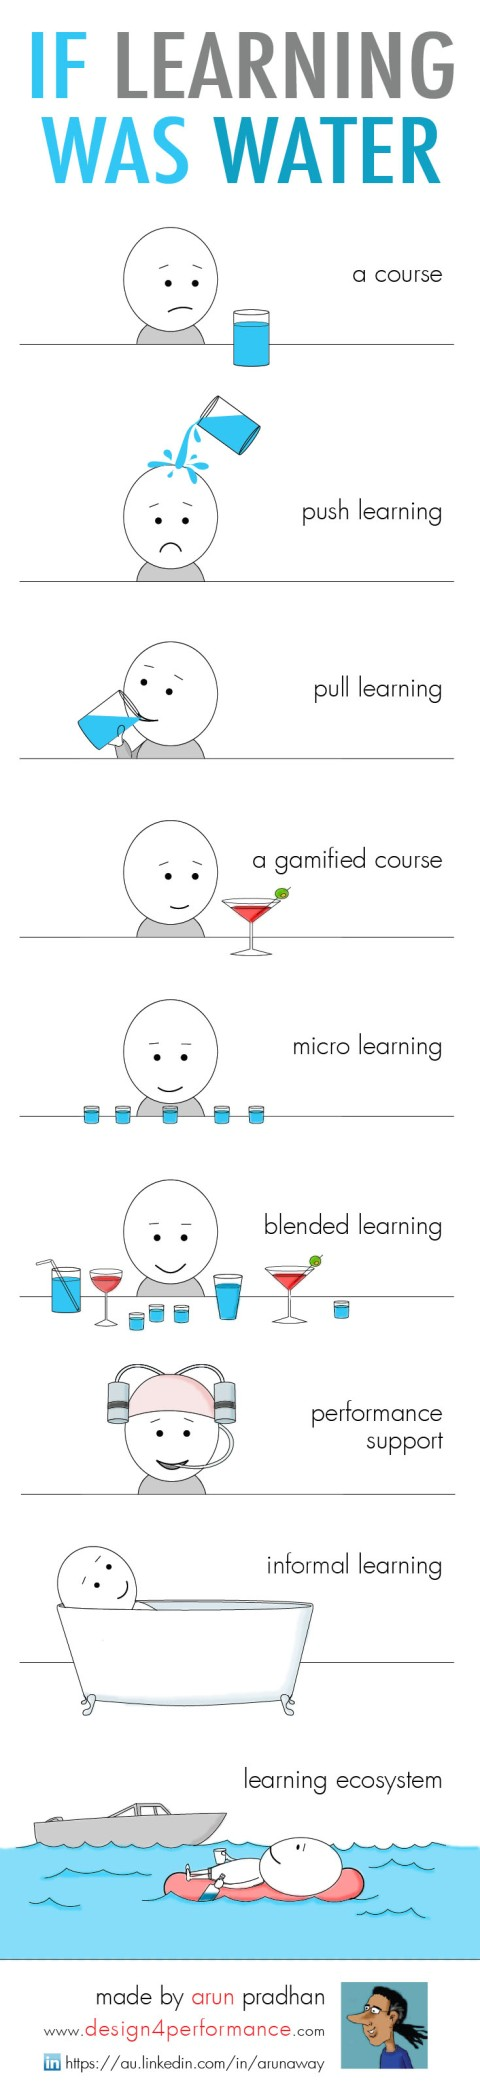 Infographic_Learnnovators_Arun-Pradhan_Learning